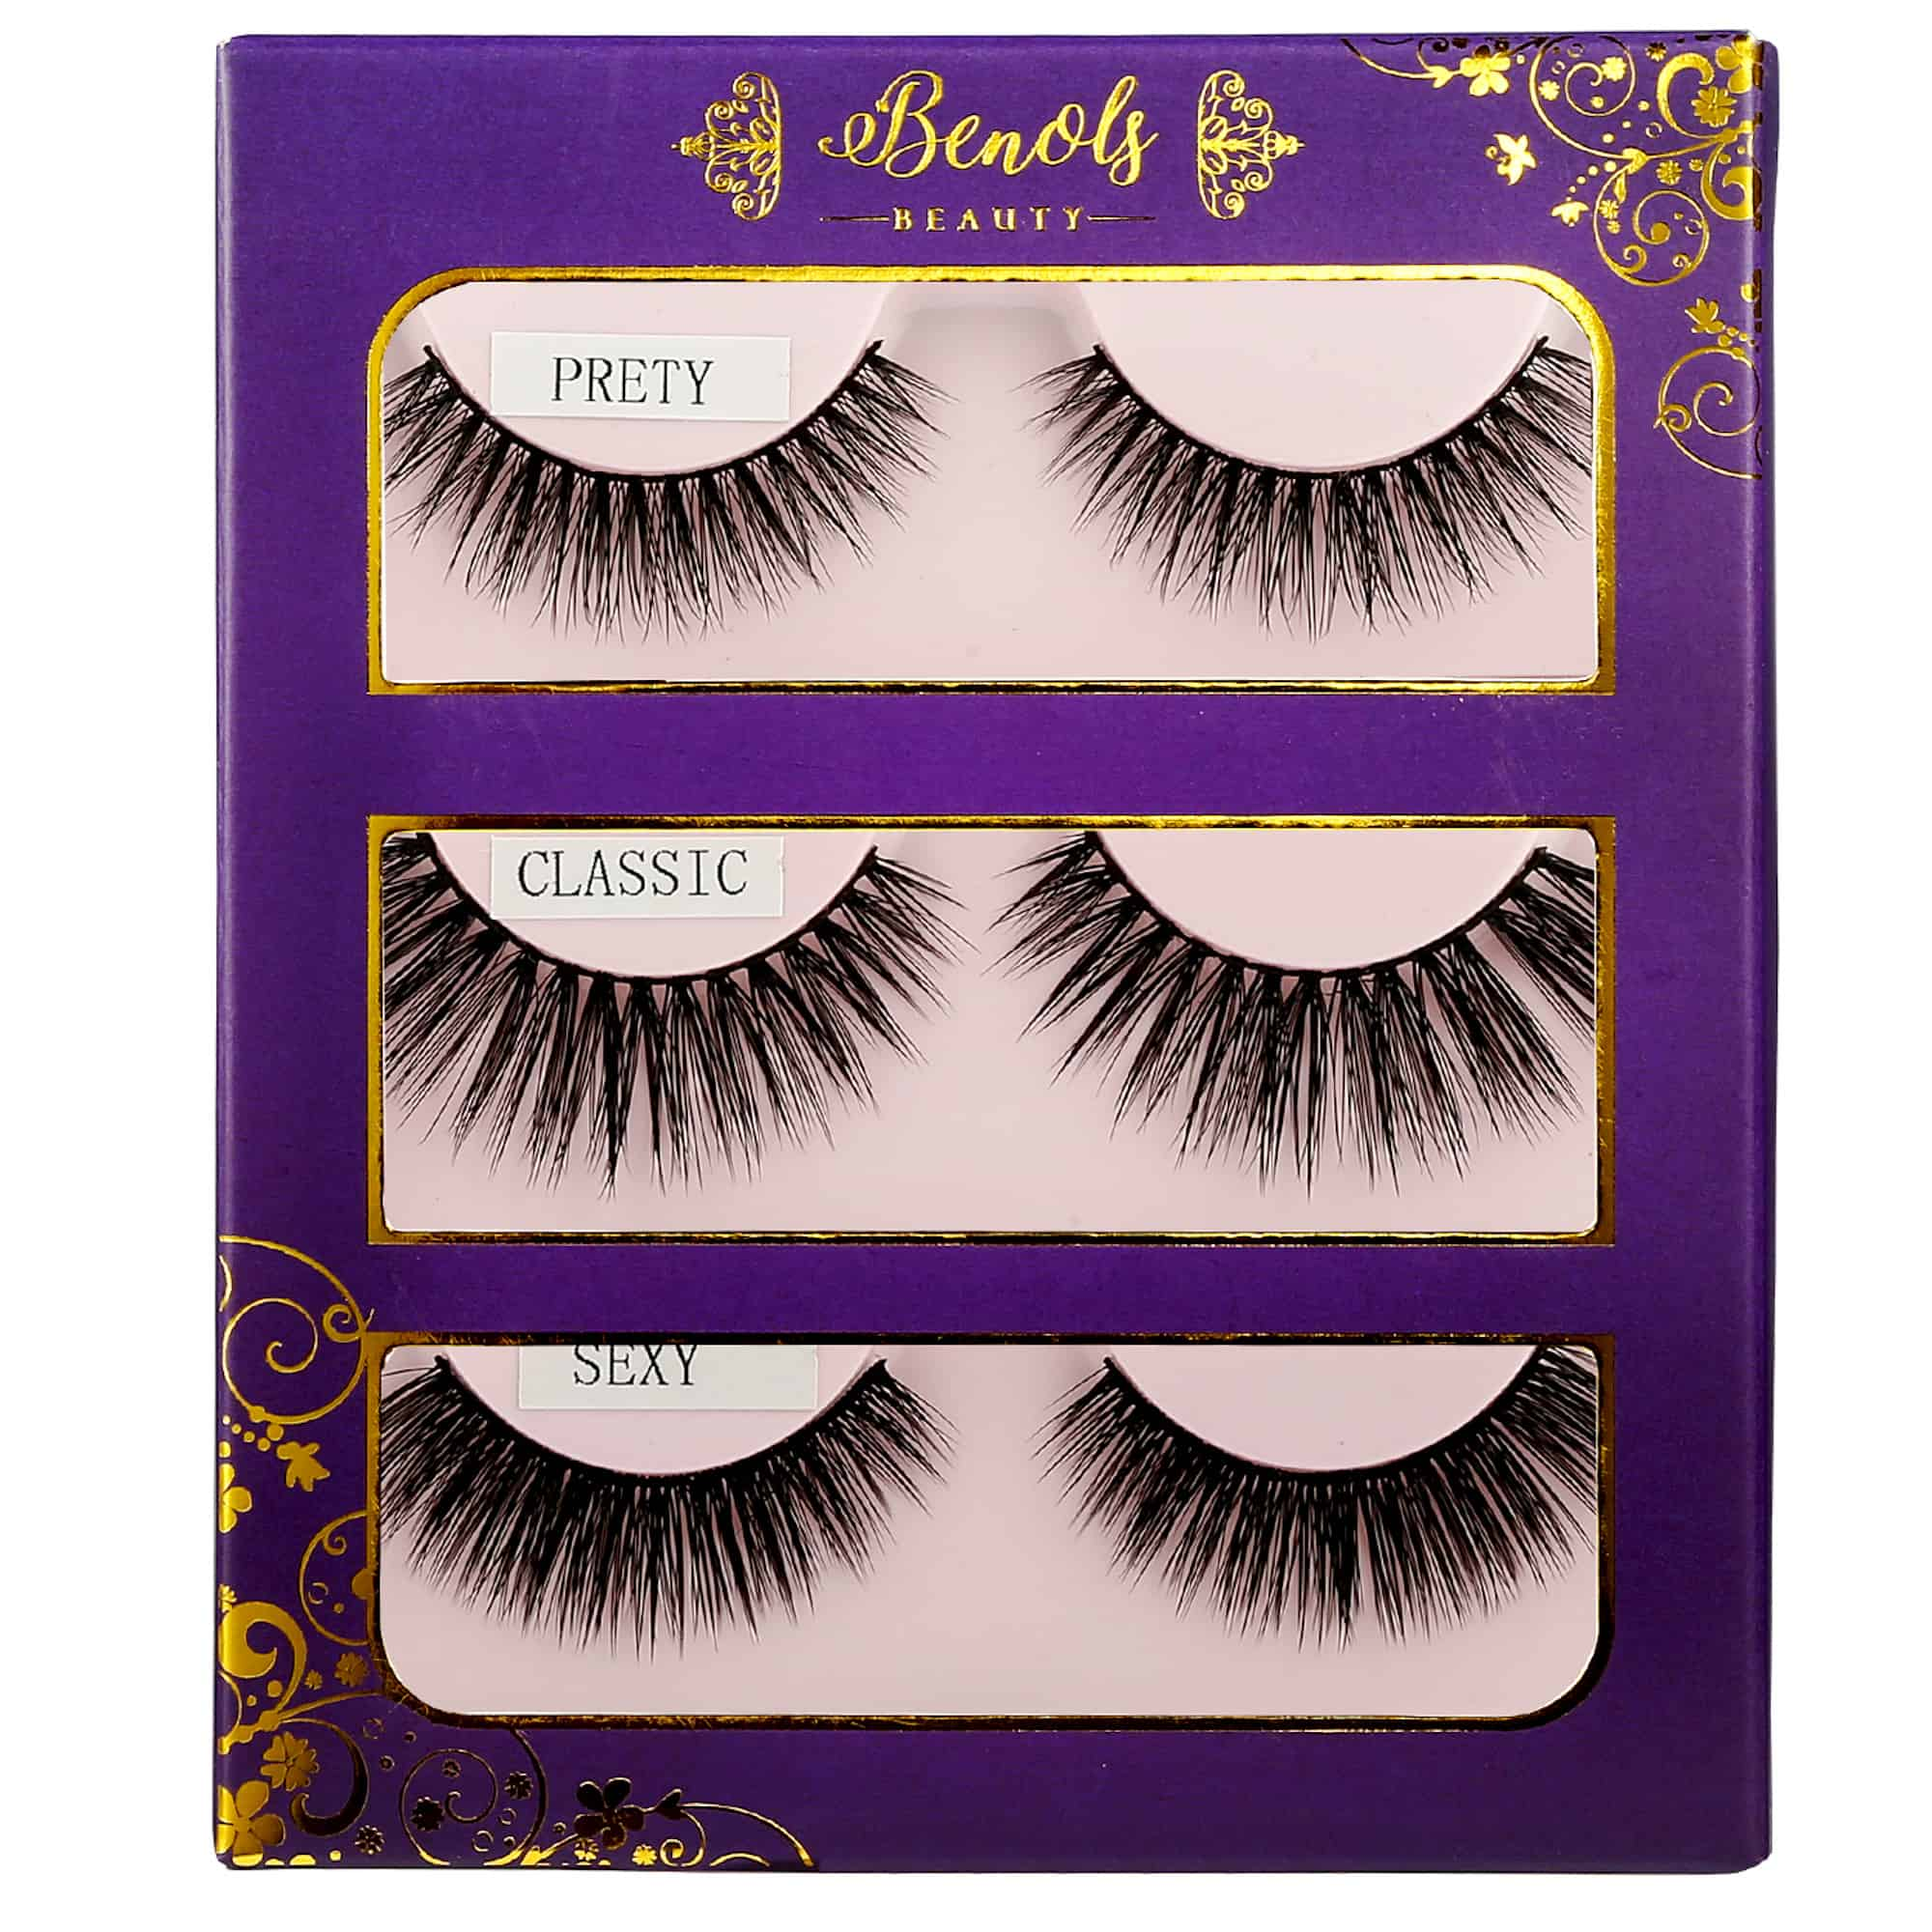 3 Pairs Glamour False Eyelashes Set - Benols Beauty